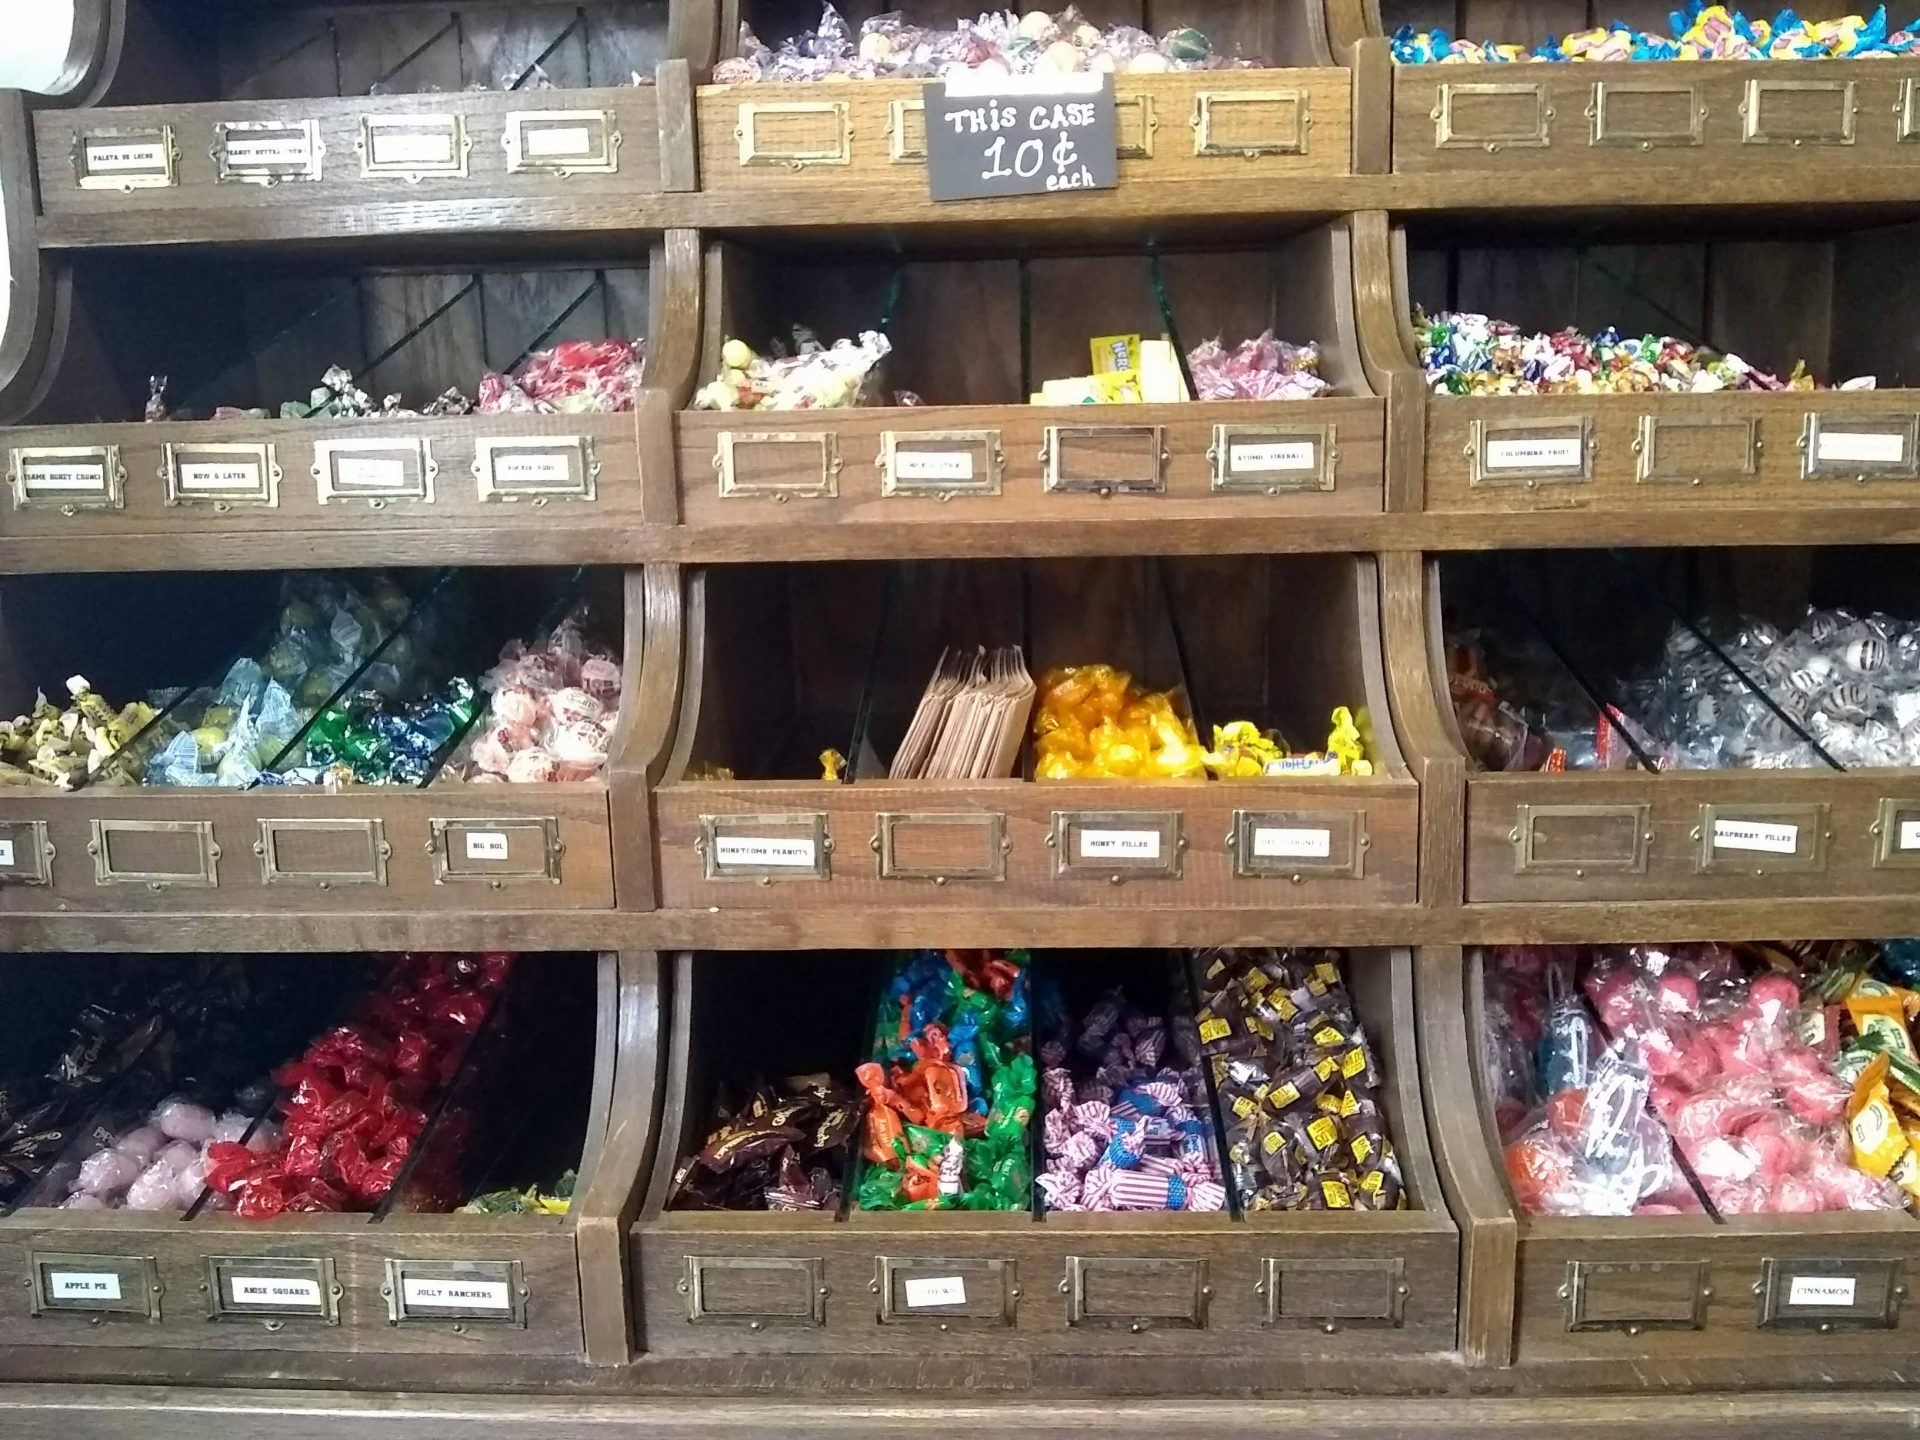 Feeling like a kid in a candy store is easy when you're in a candy store and haven't grown up.